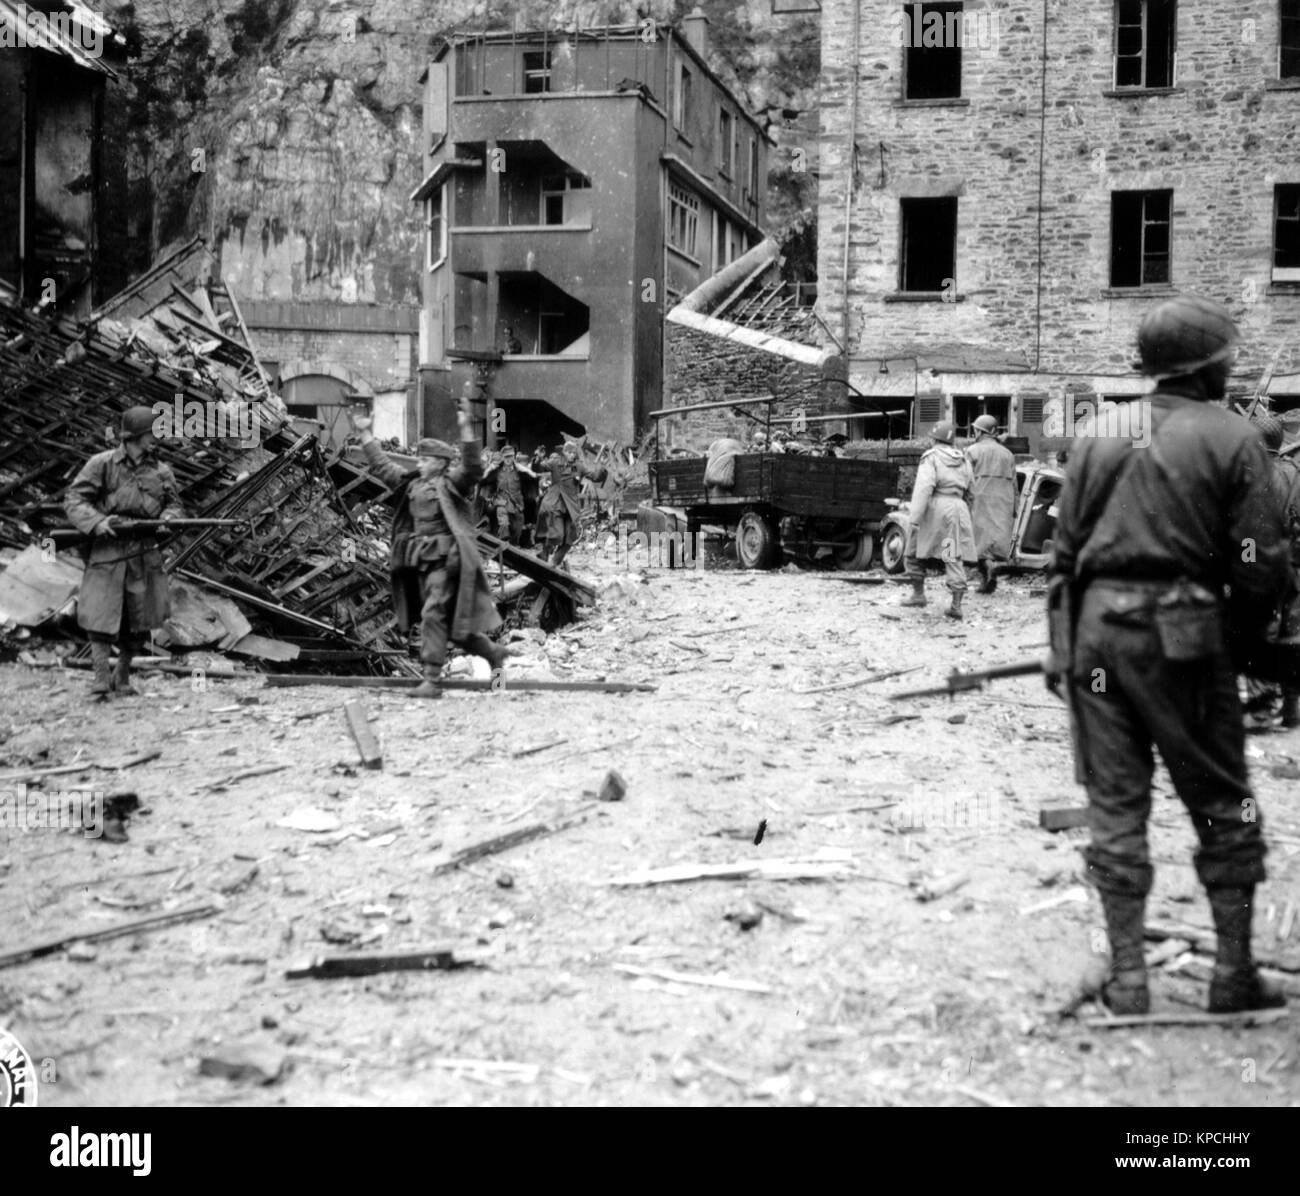 German troops surrender at Cherbourg in France 1944 - Stock Image